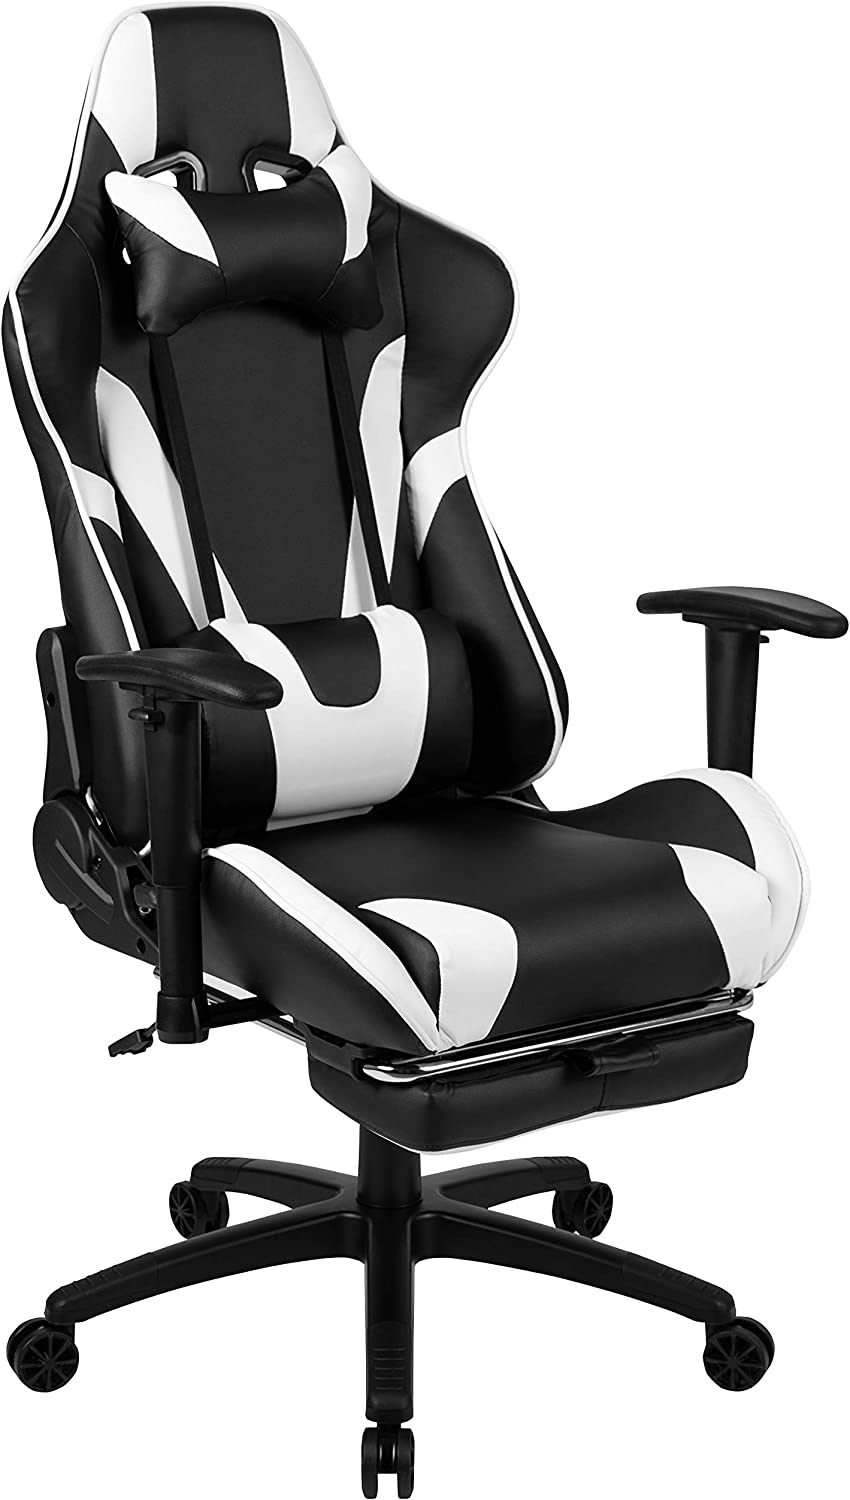 Flash Furniture X30 Gaming Chair Review